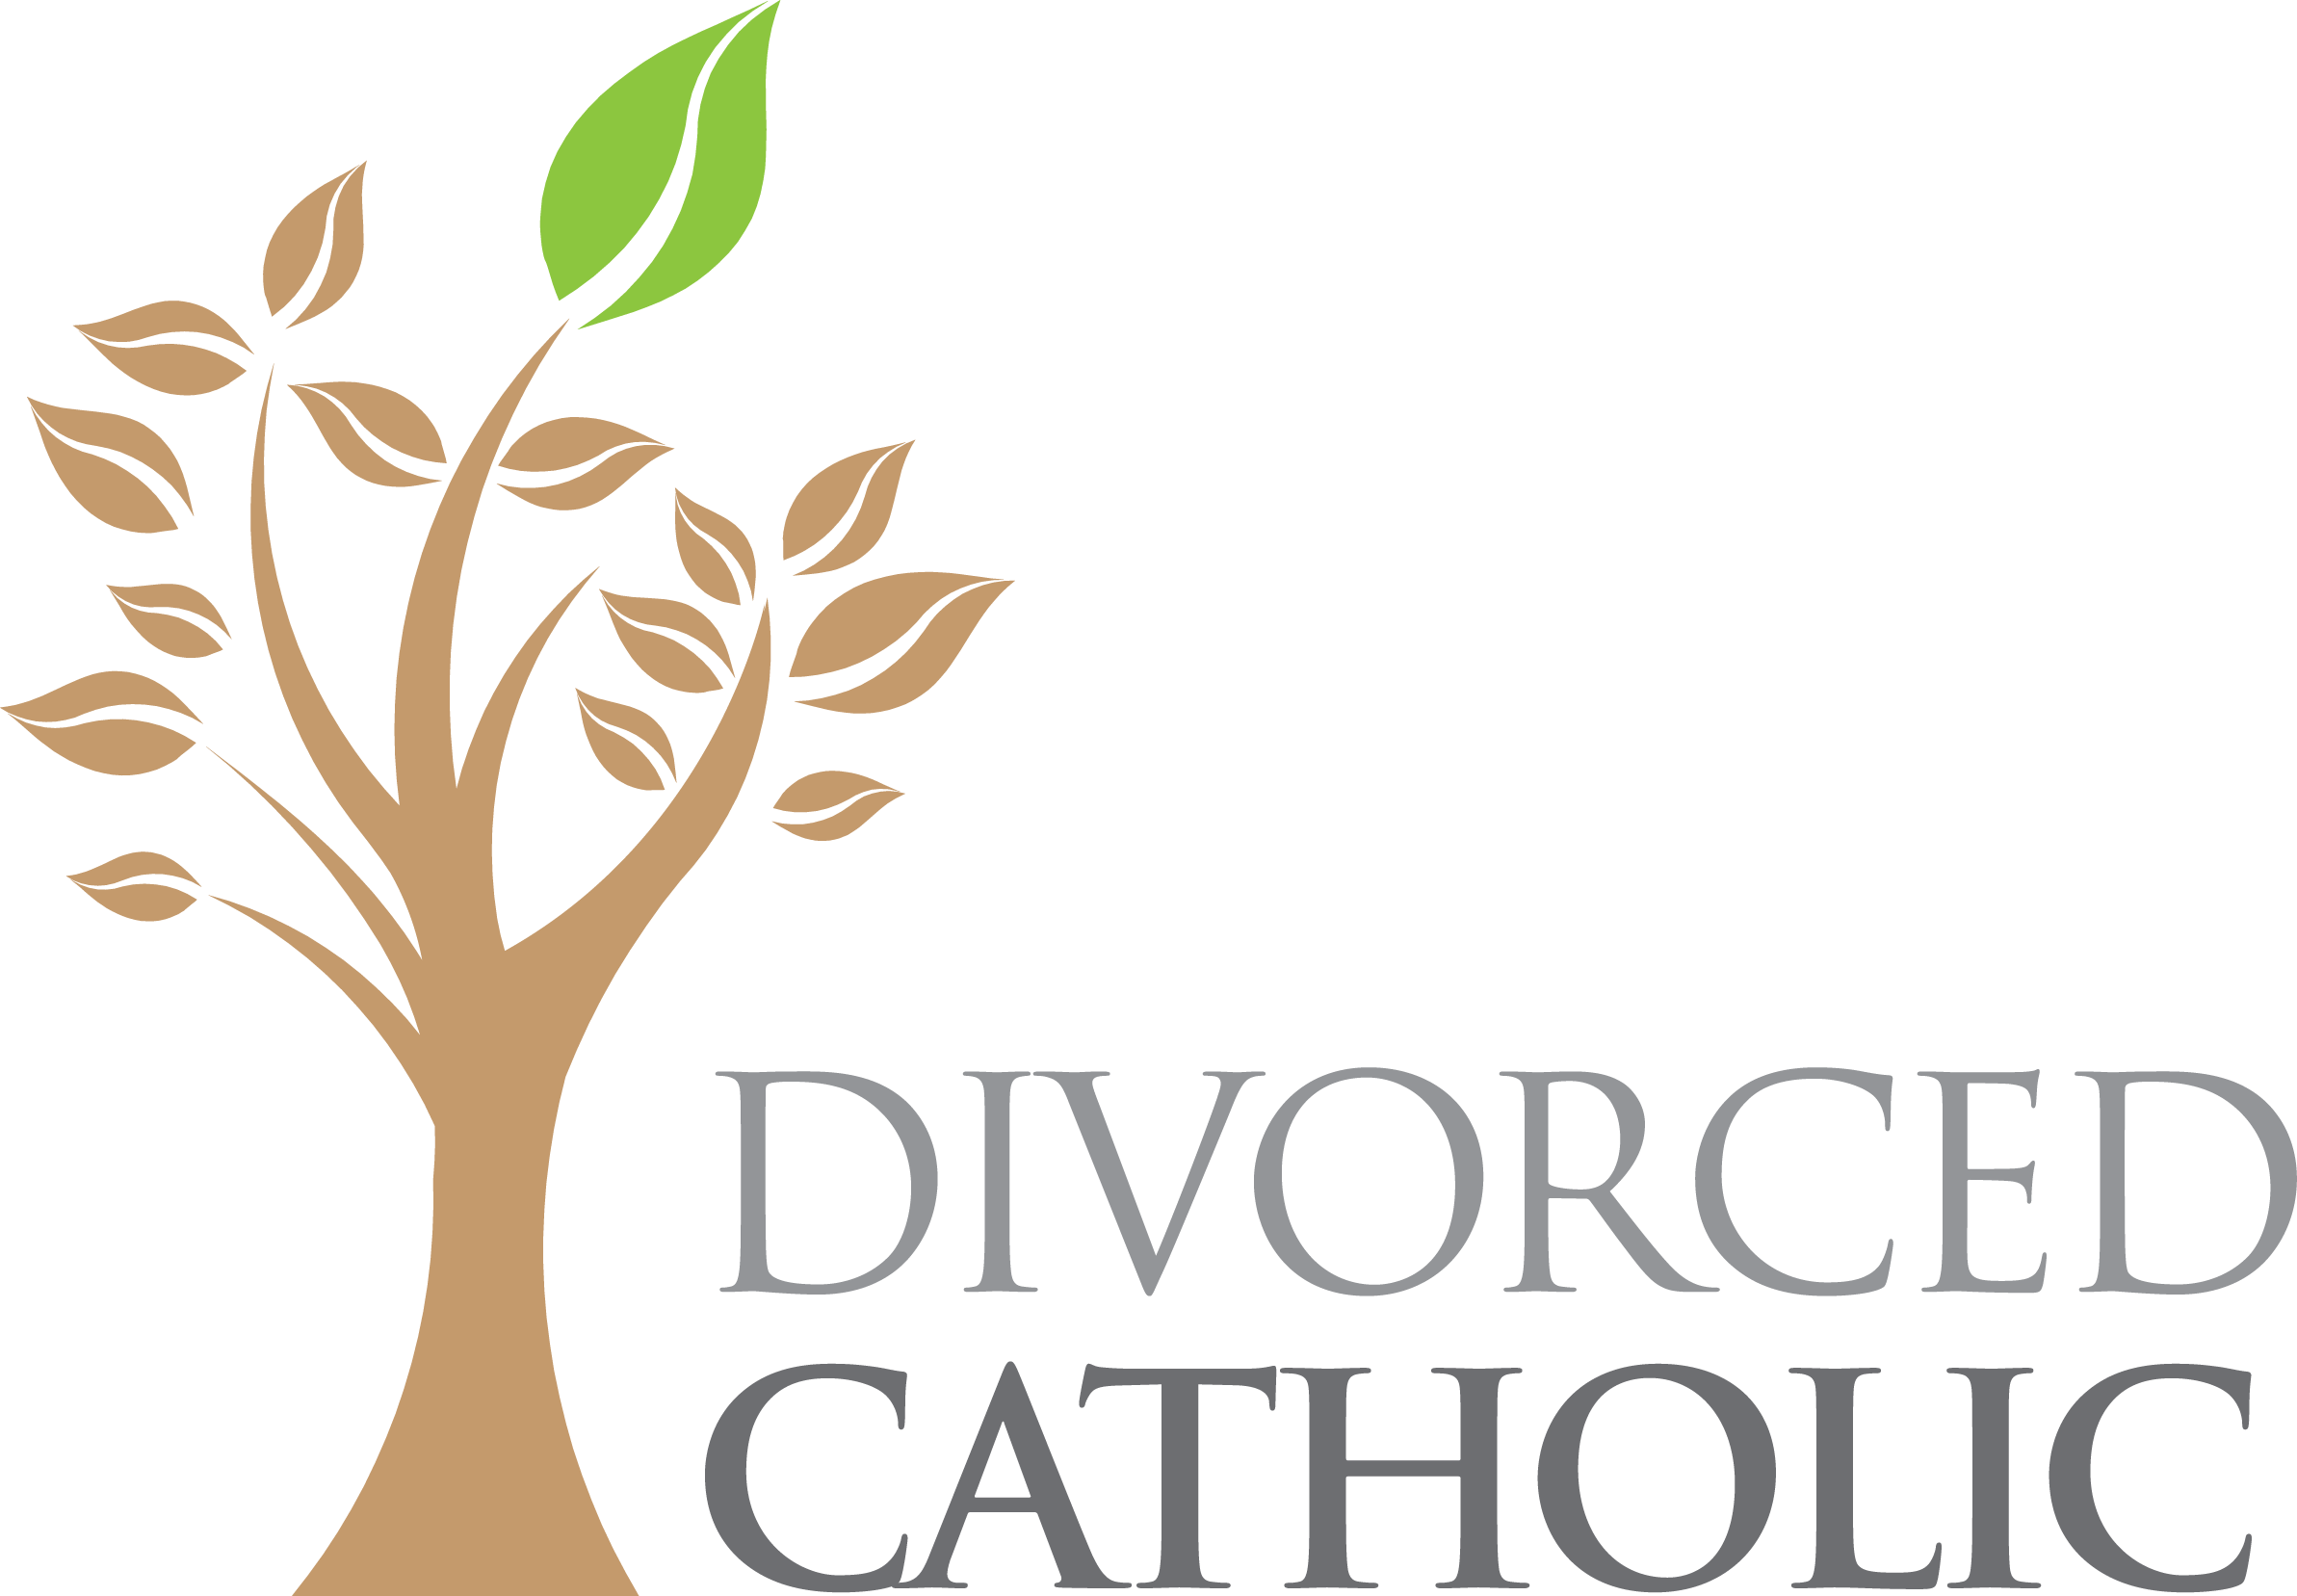 Divorced Catholic